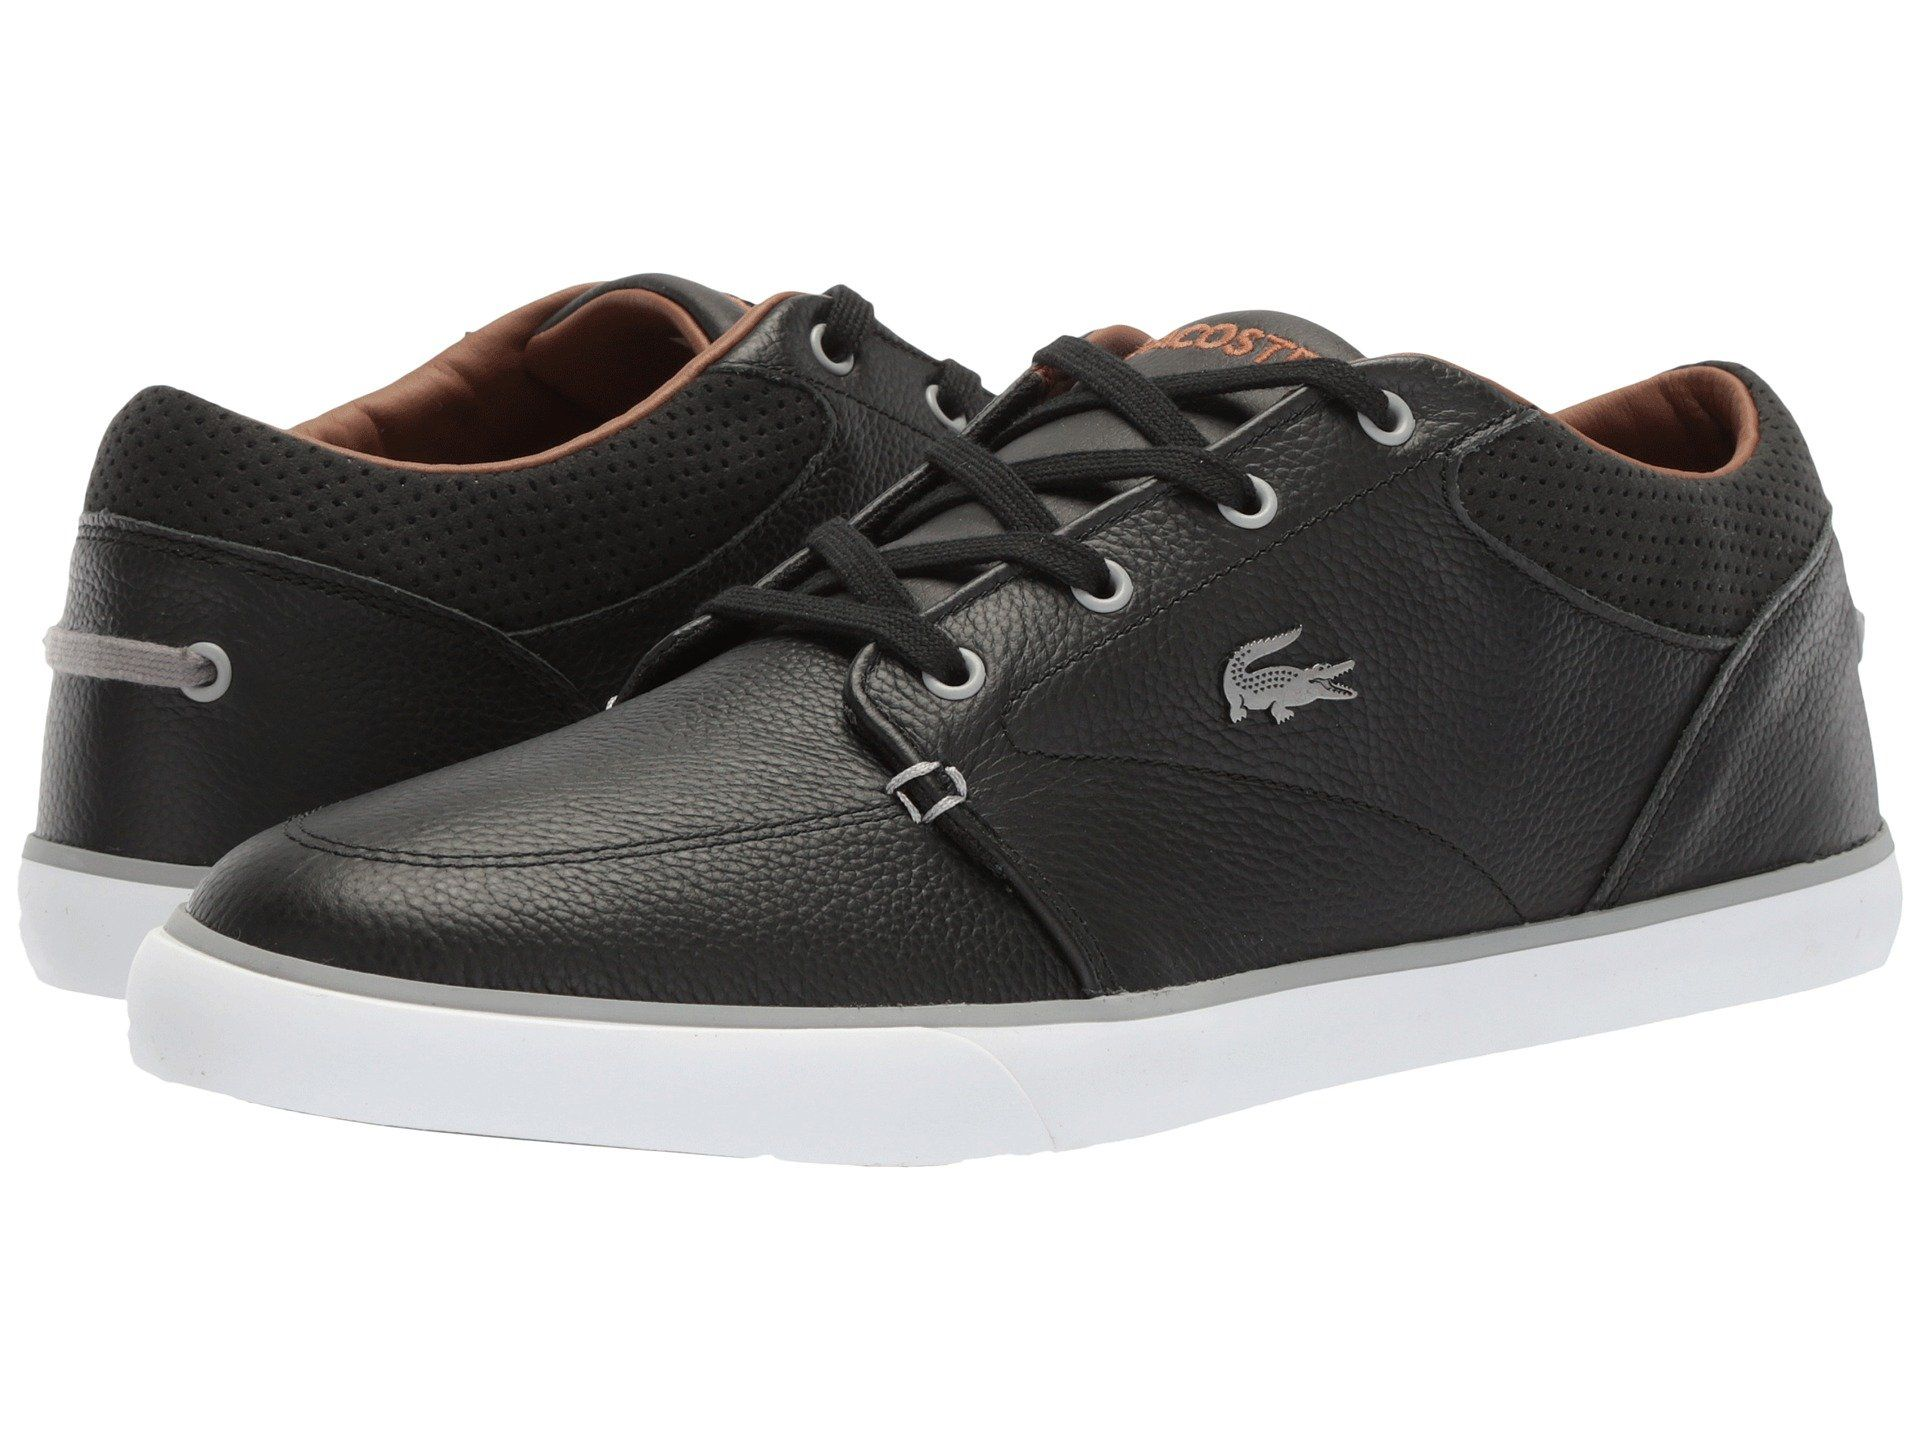 de6d2791a4b3 LACOSTE Bayliss Vulc 317 US CAM.  lacoste  shoes